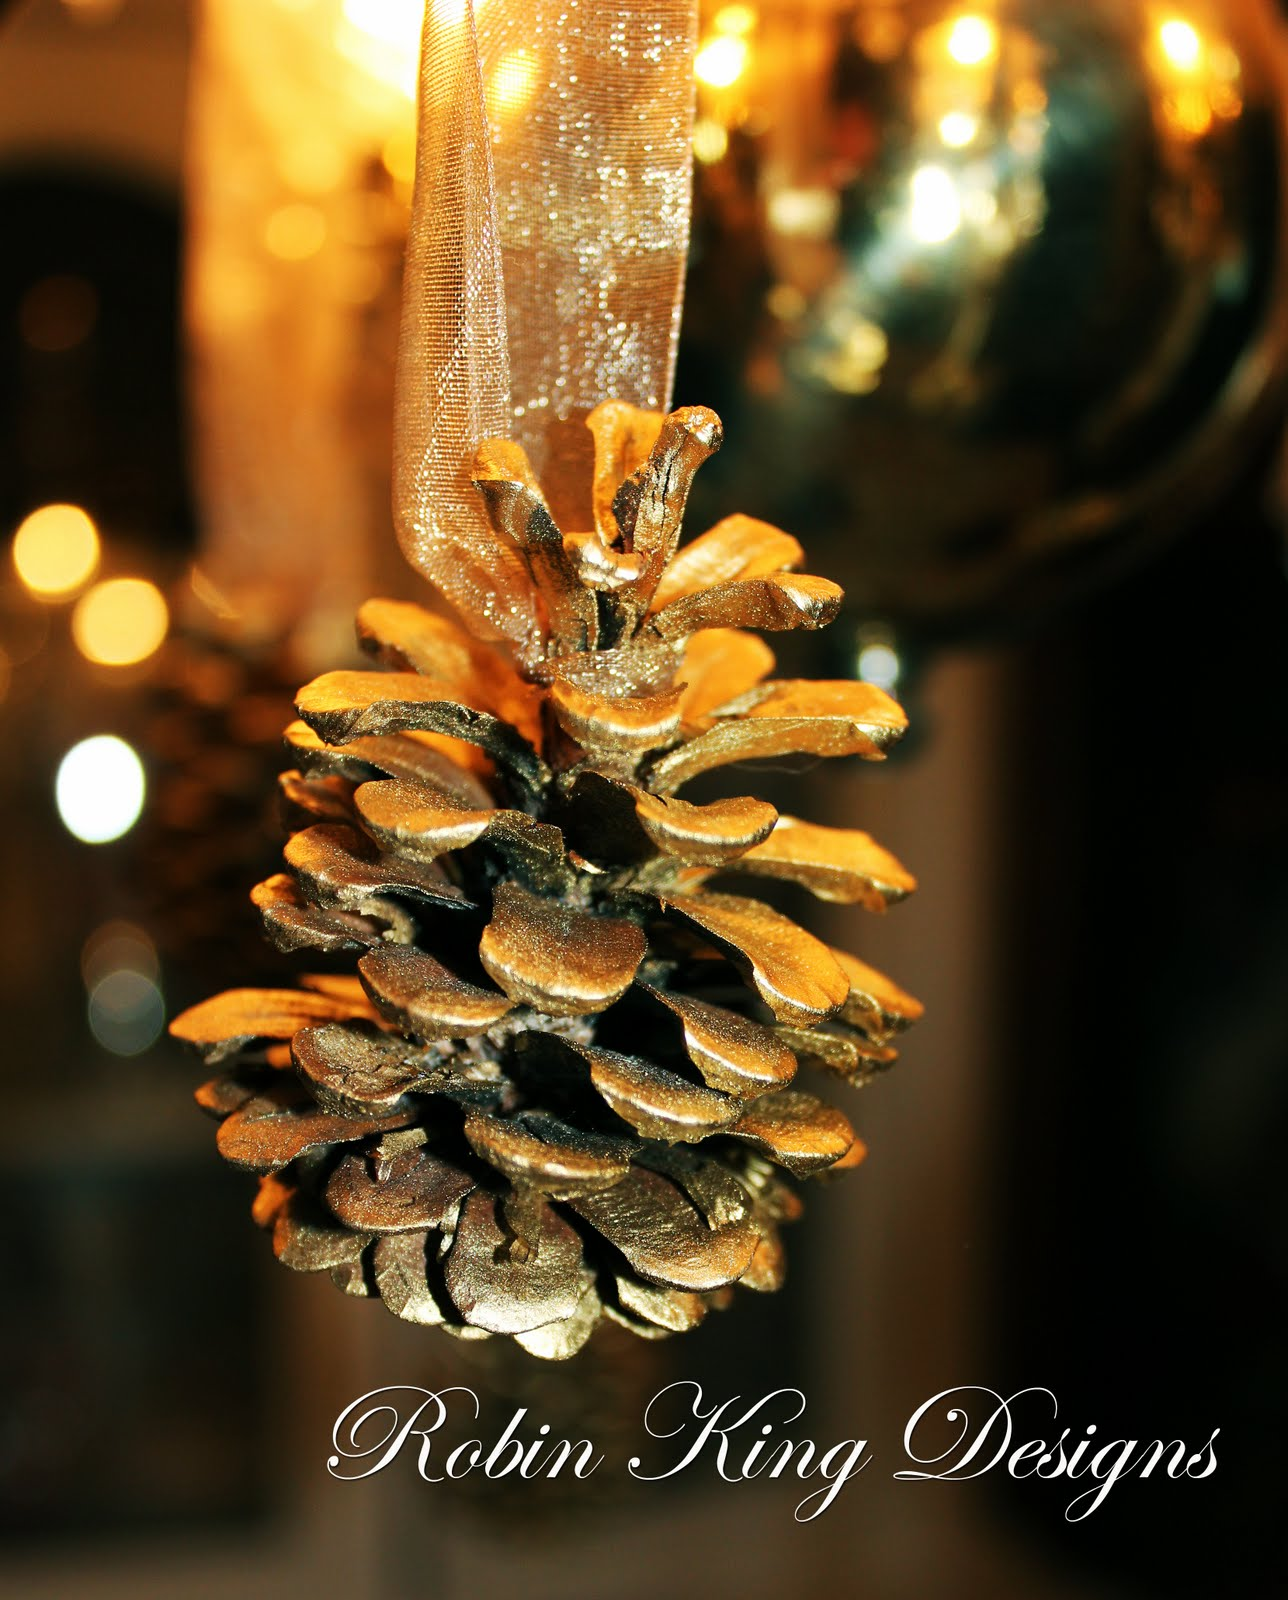 Robin king designs a few beautiful things for christmas easy to make all you need are pine cones gold paint and pretty sheer ribbon its a fun and quick project arubaitofo Gallery